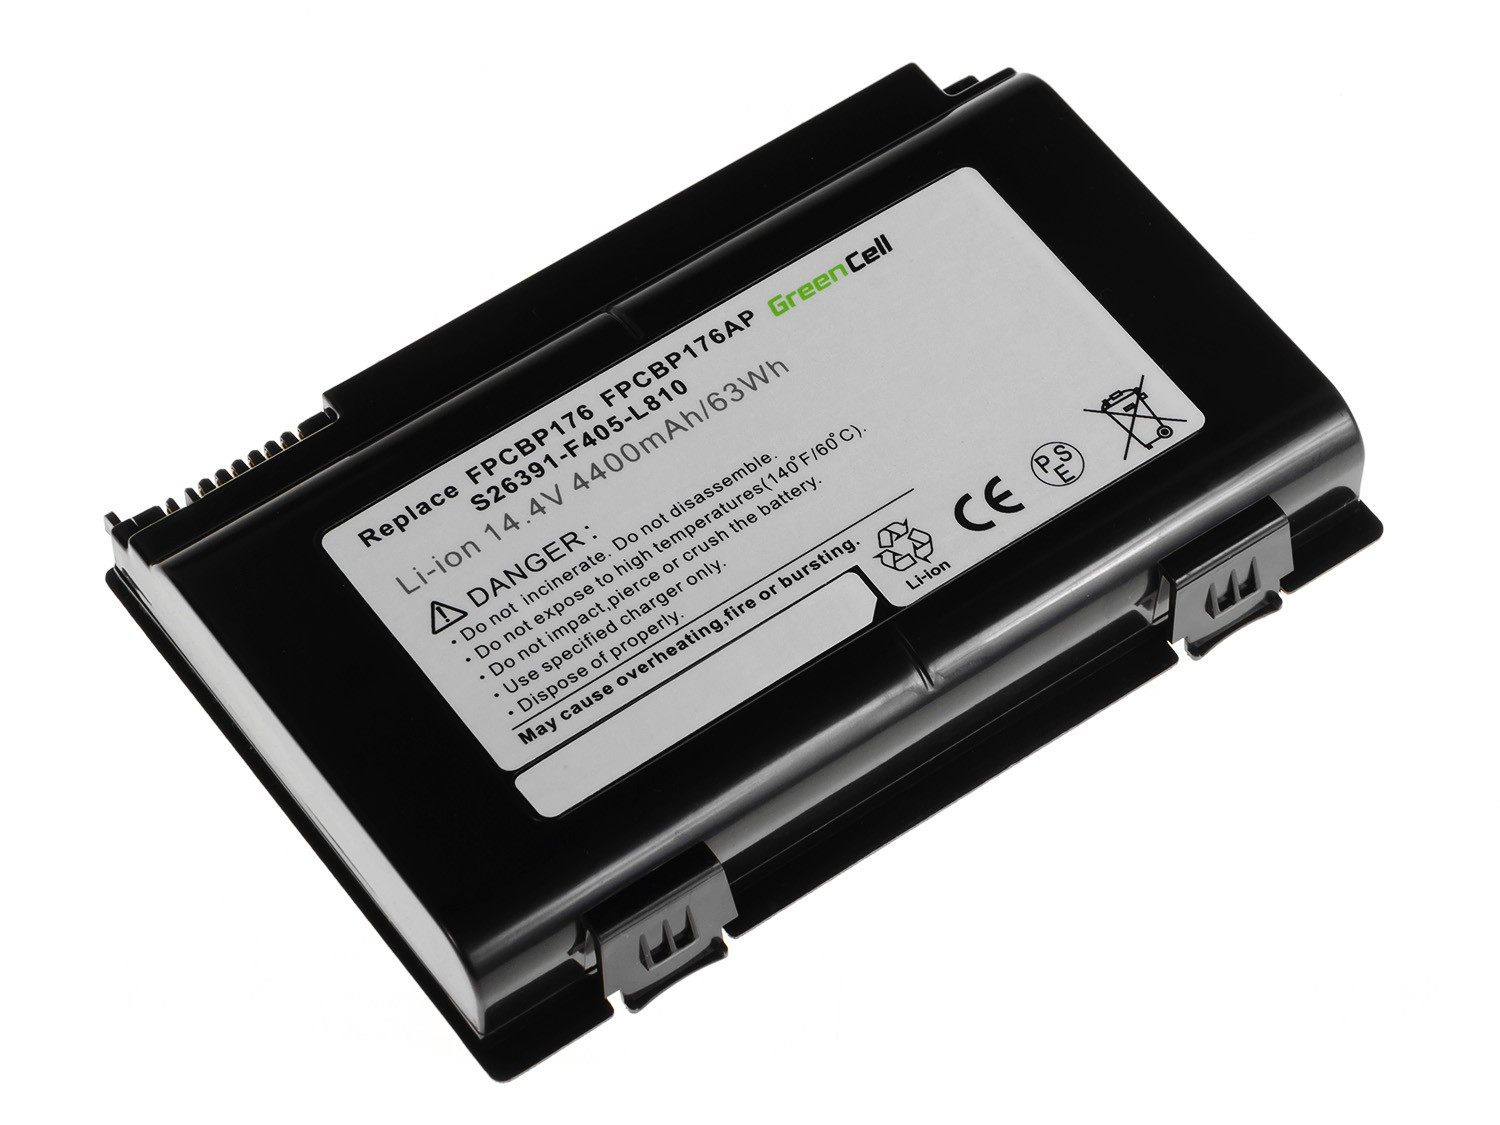 Green Cell Battery for Fujitsu-Siemens LifeBook E8410 E8420 E780 N7010 AH550 NH570 / 14,4V 4400mAh